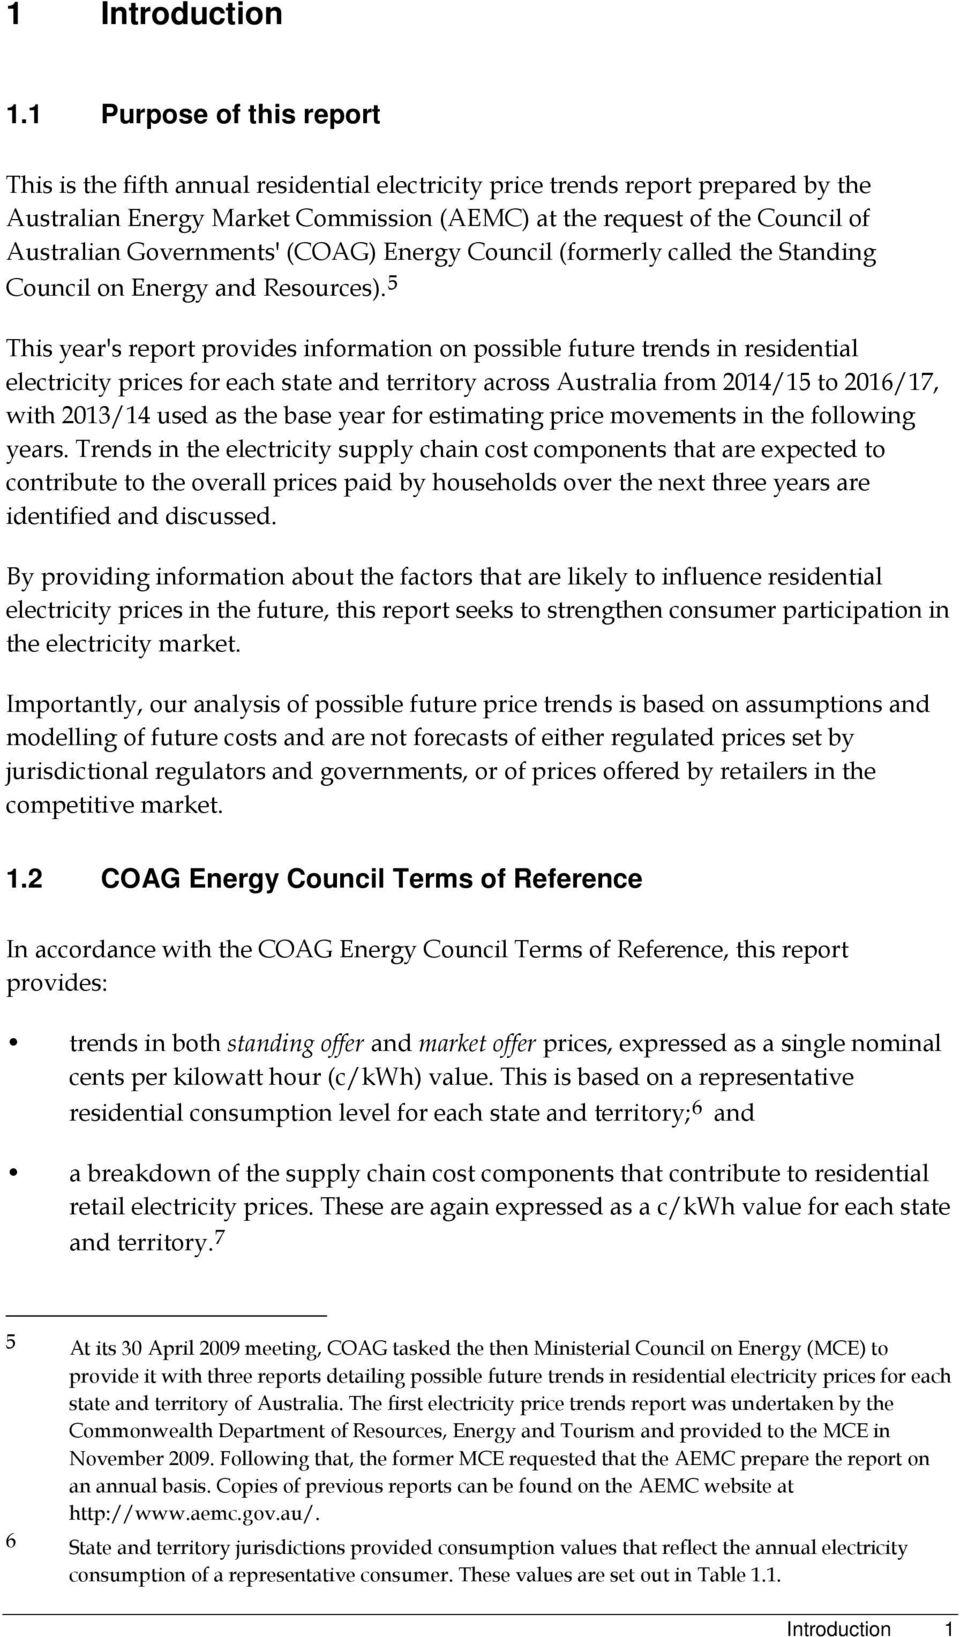 Governments' (COAG) Energy Council (formerly called the Standing Council on Energy and Resources).